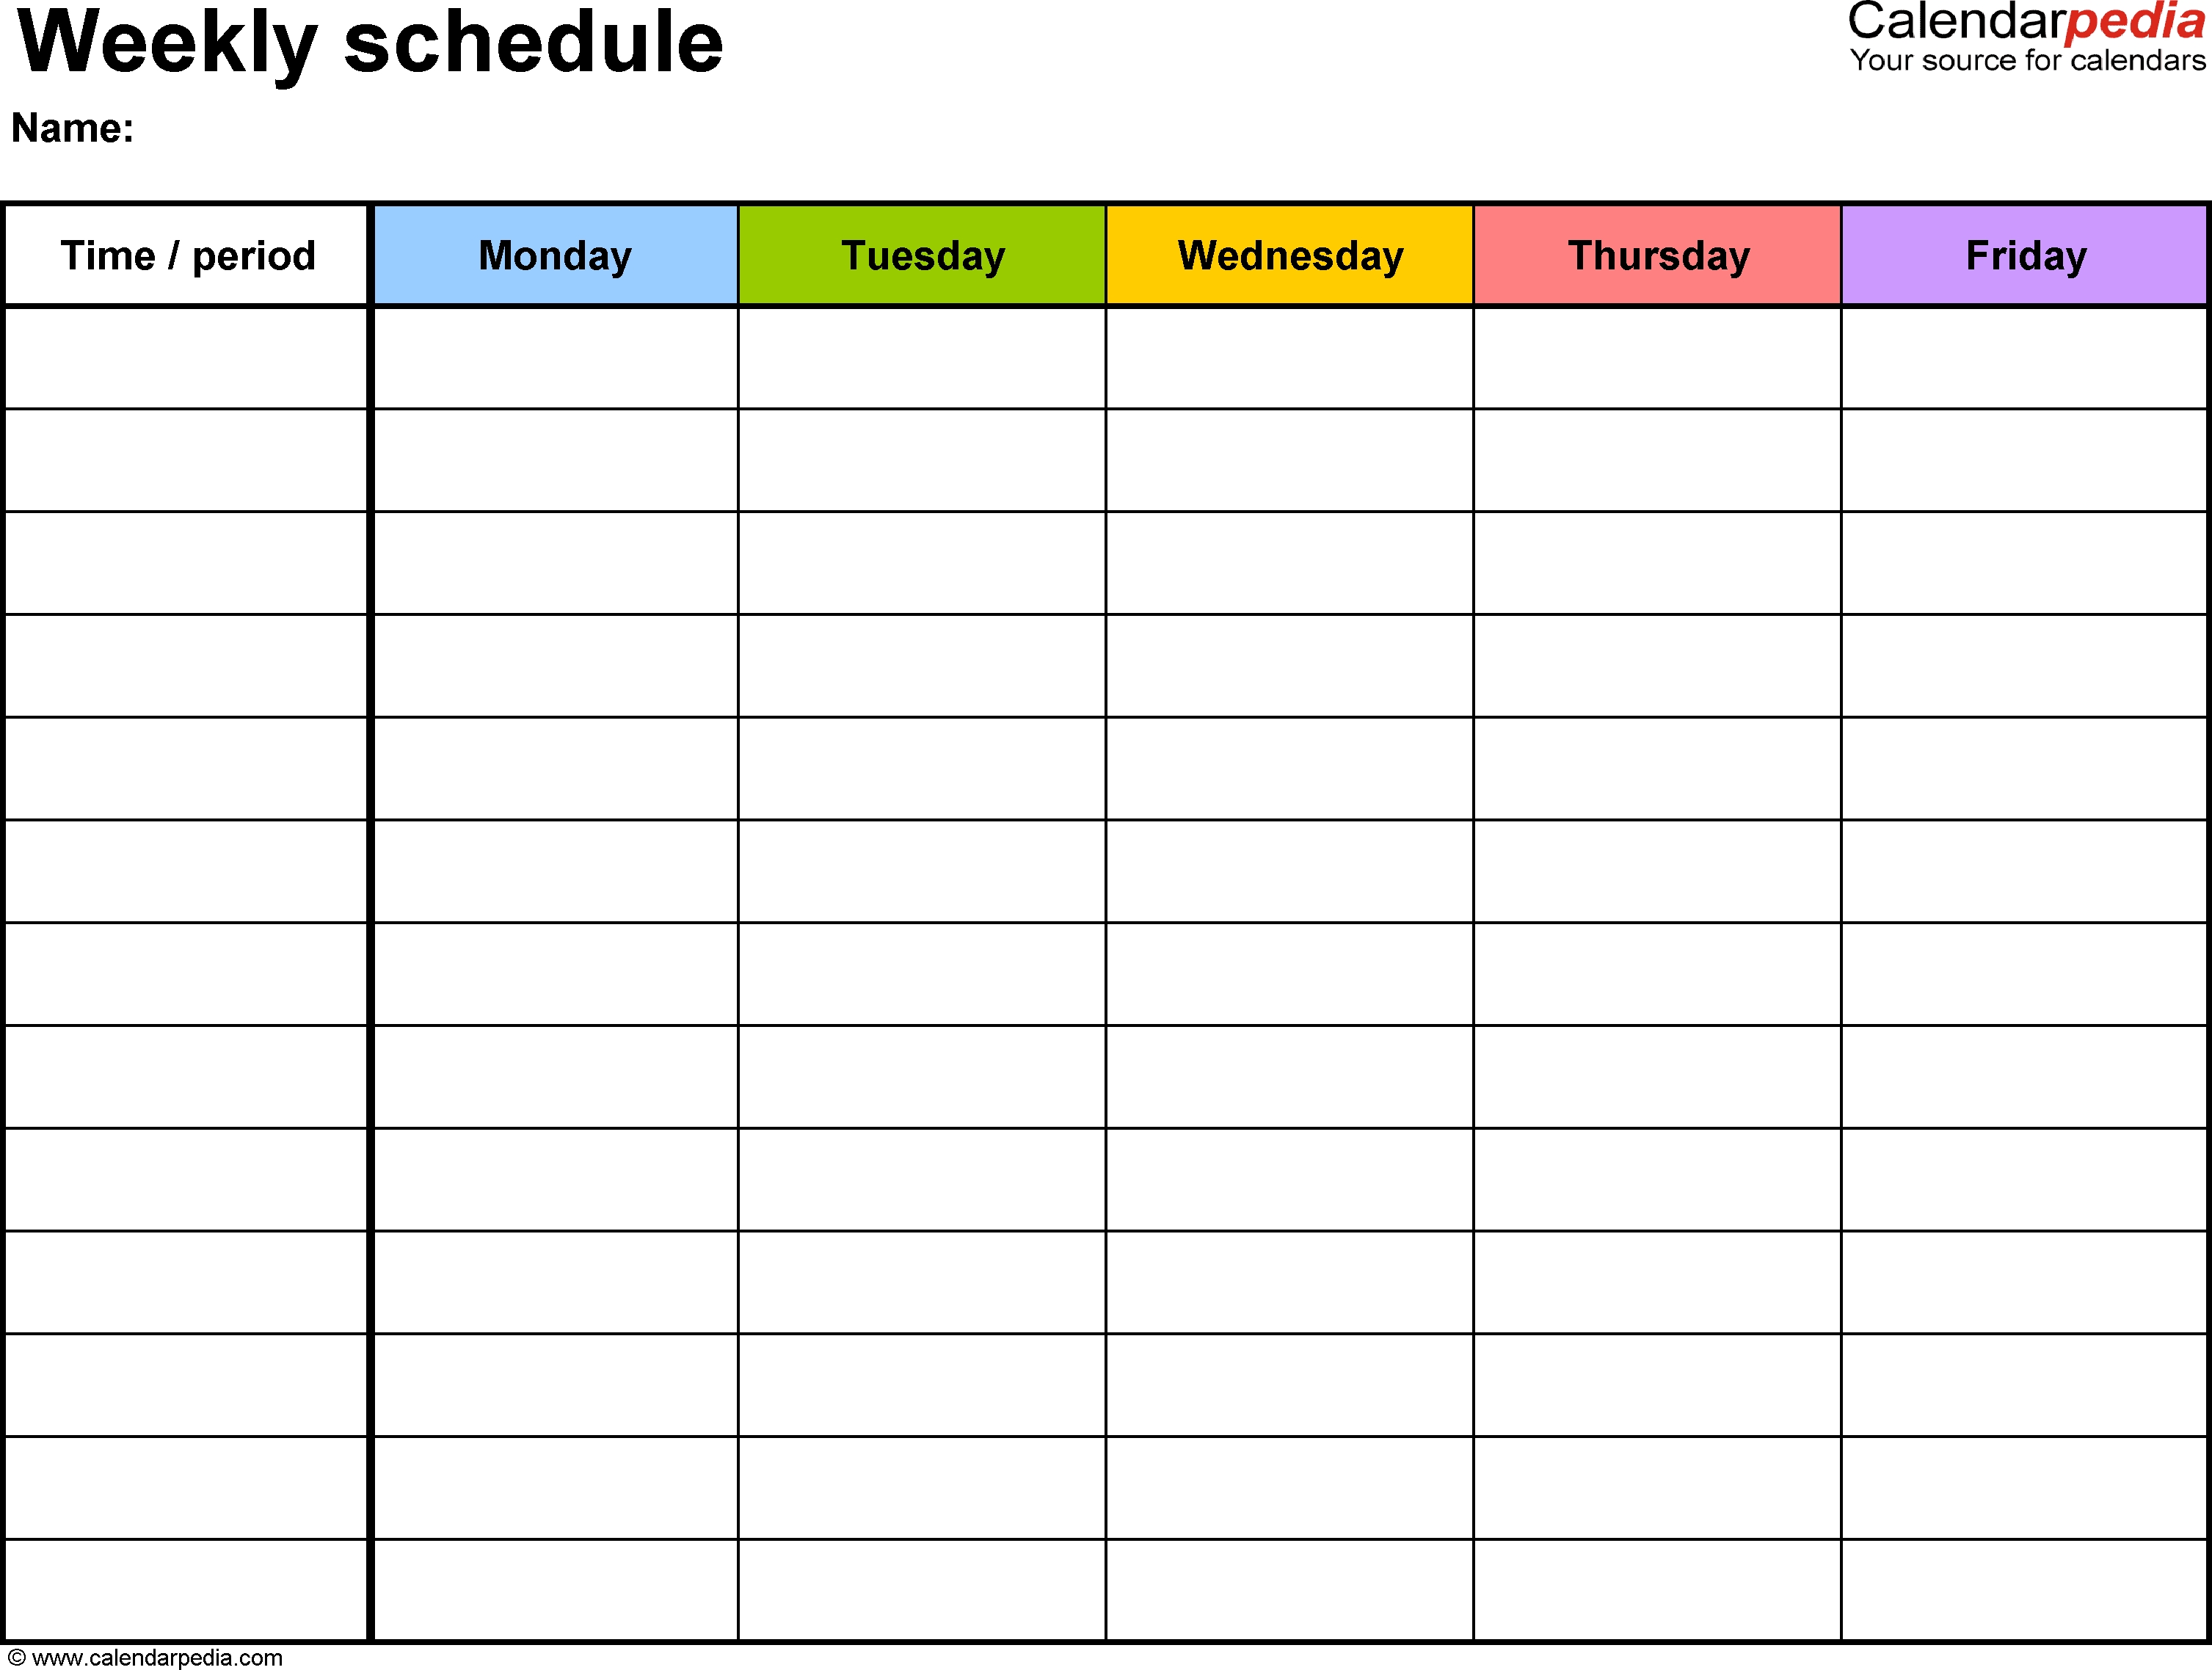 Free Weekly Schedule Templates For Word - 18 Templates regarding Blank Weekly Calendar With Times